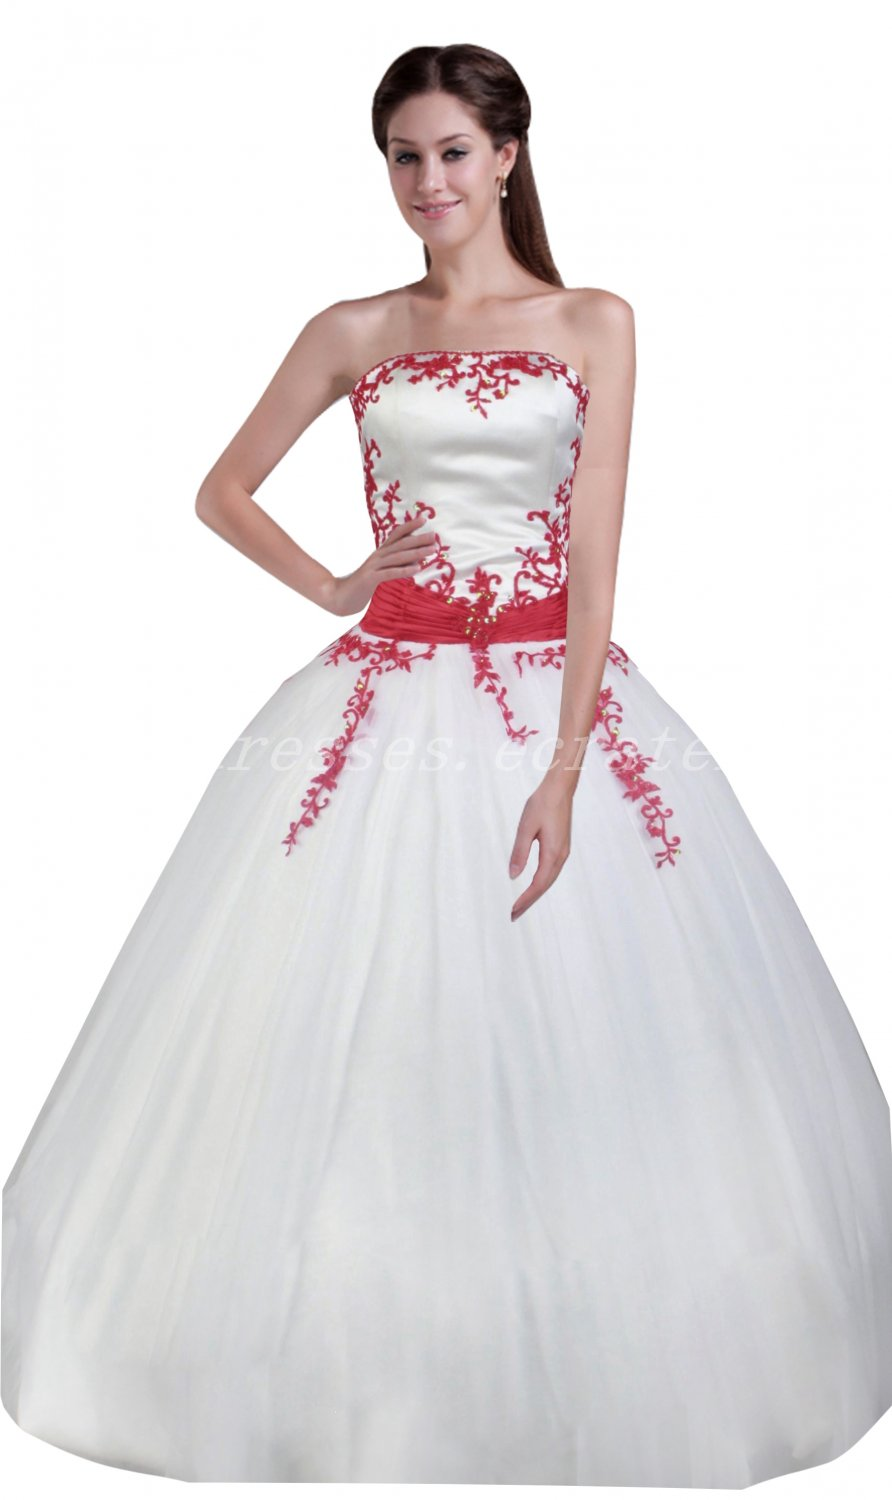 Strapless White And Red Ball Gown Sweet 15 Dresses With Lace Appliques